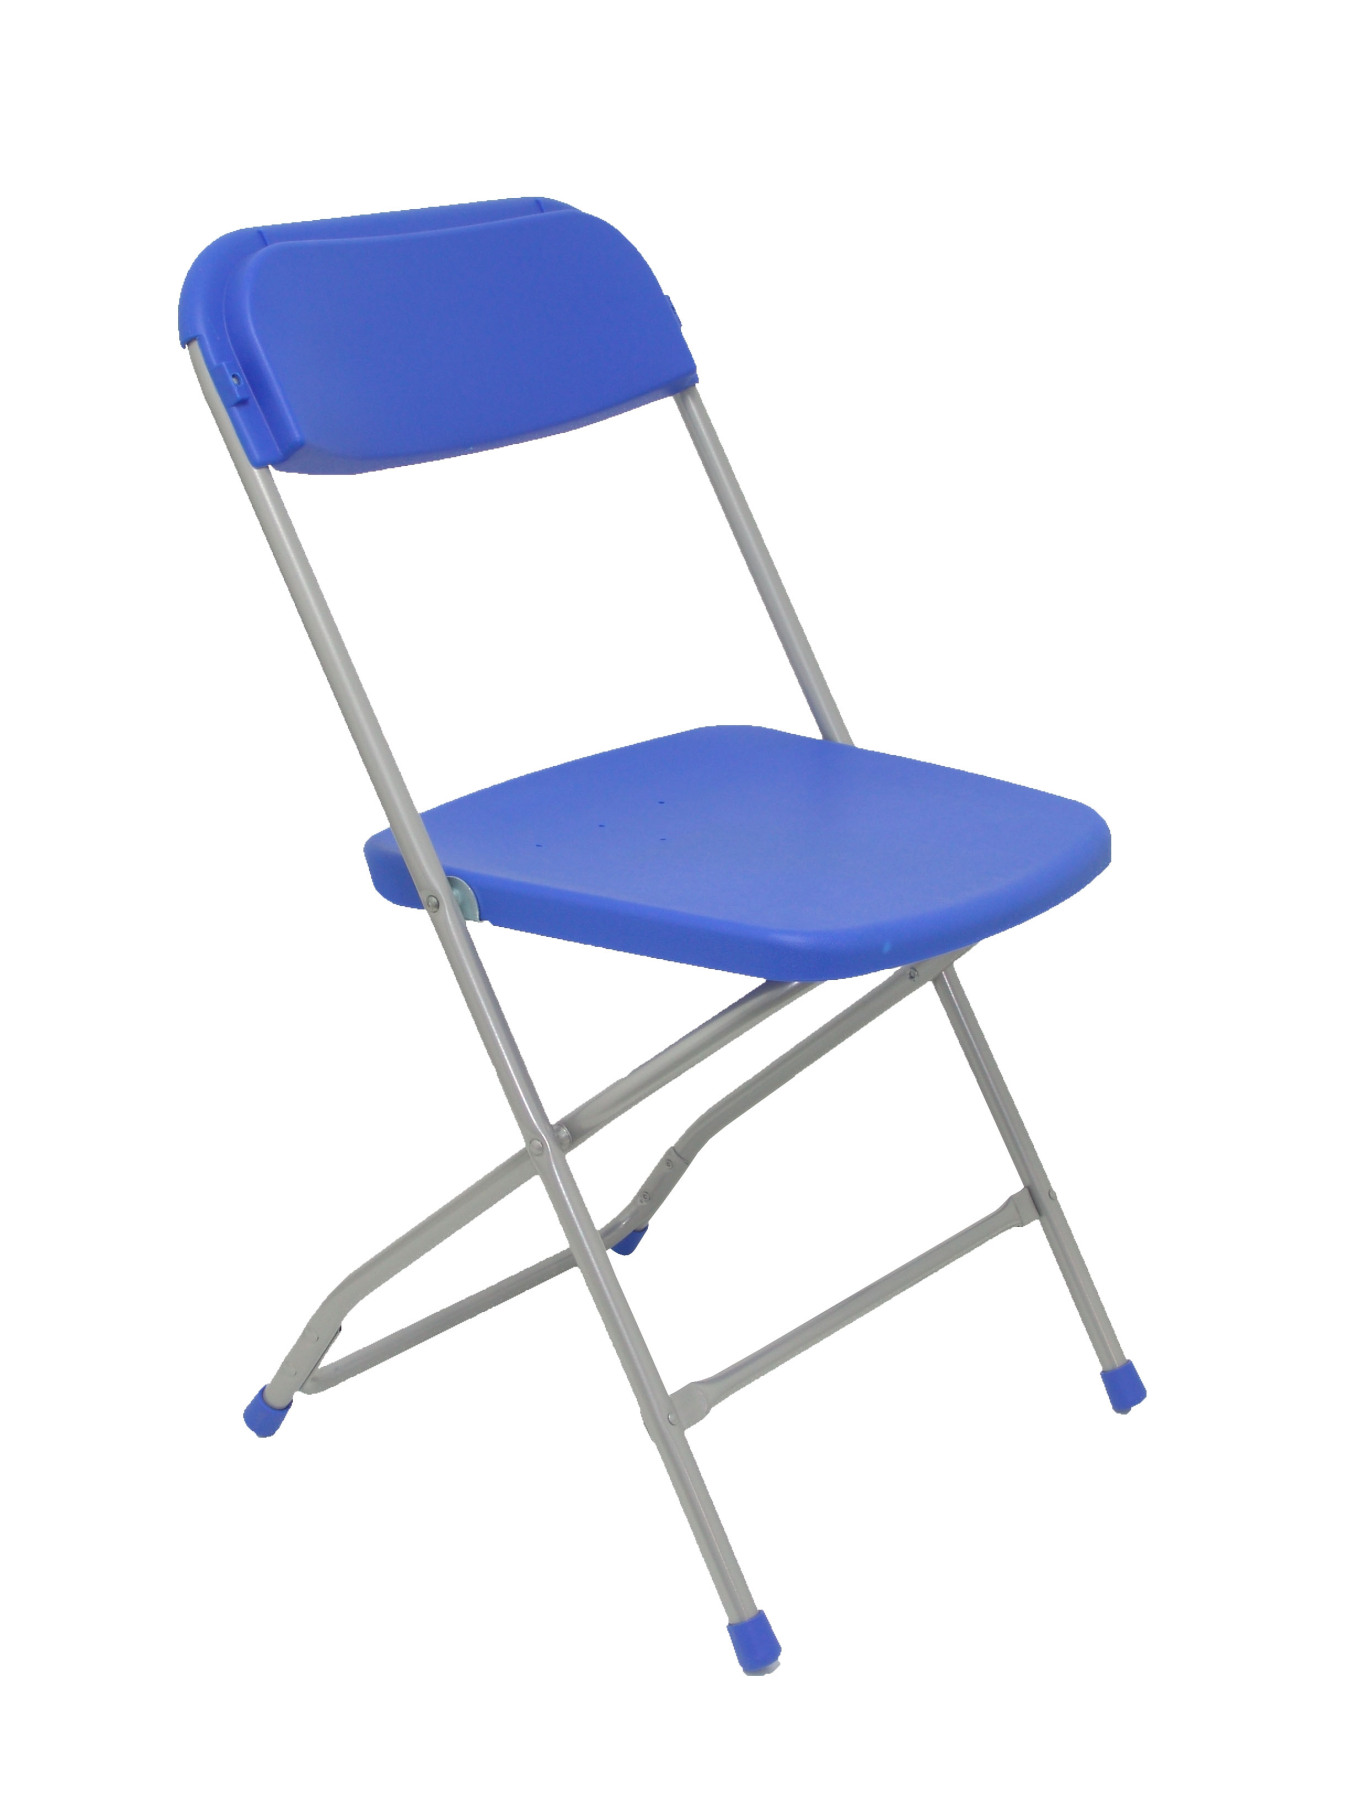 Pack 5 Folding Chairs Conference Up Seat And Backstop Polypropylene Capacitor's Color Blue TAPHOLE AND CURLED Model Nurseries